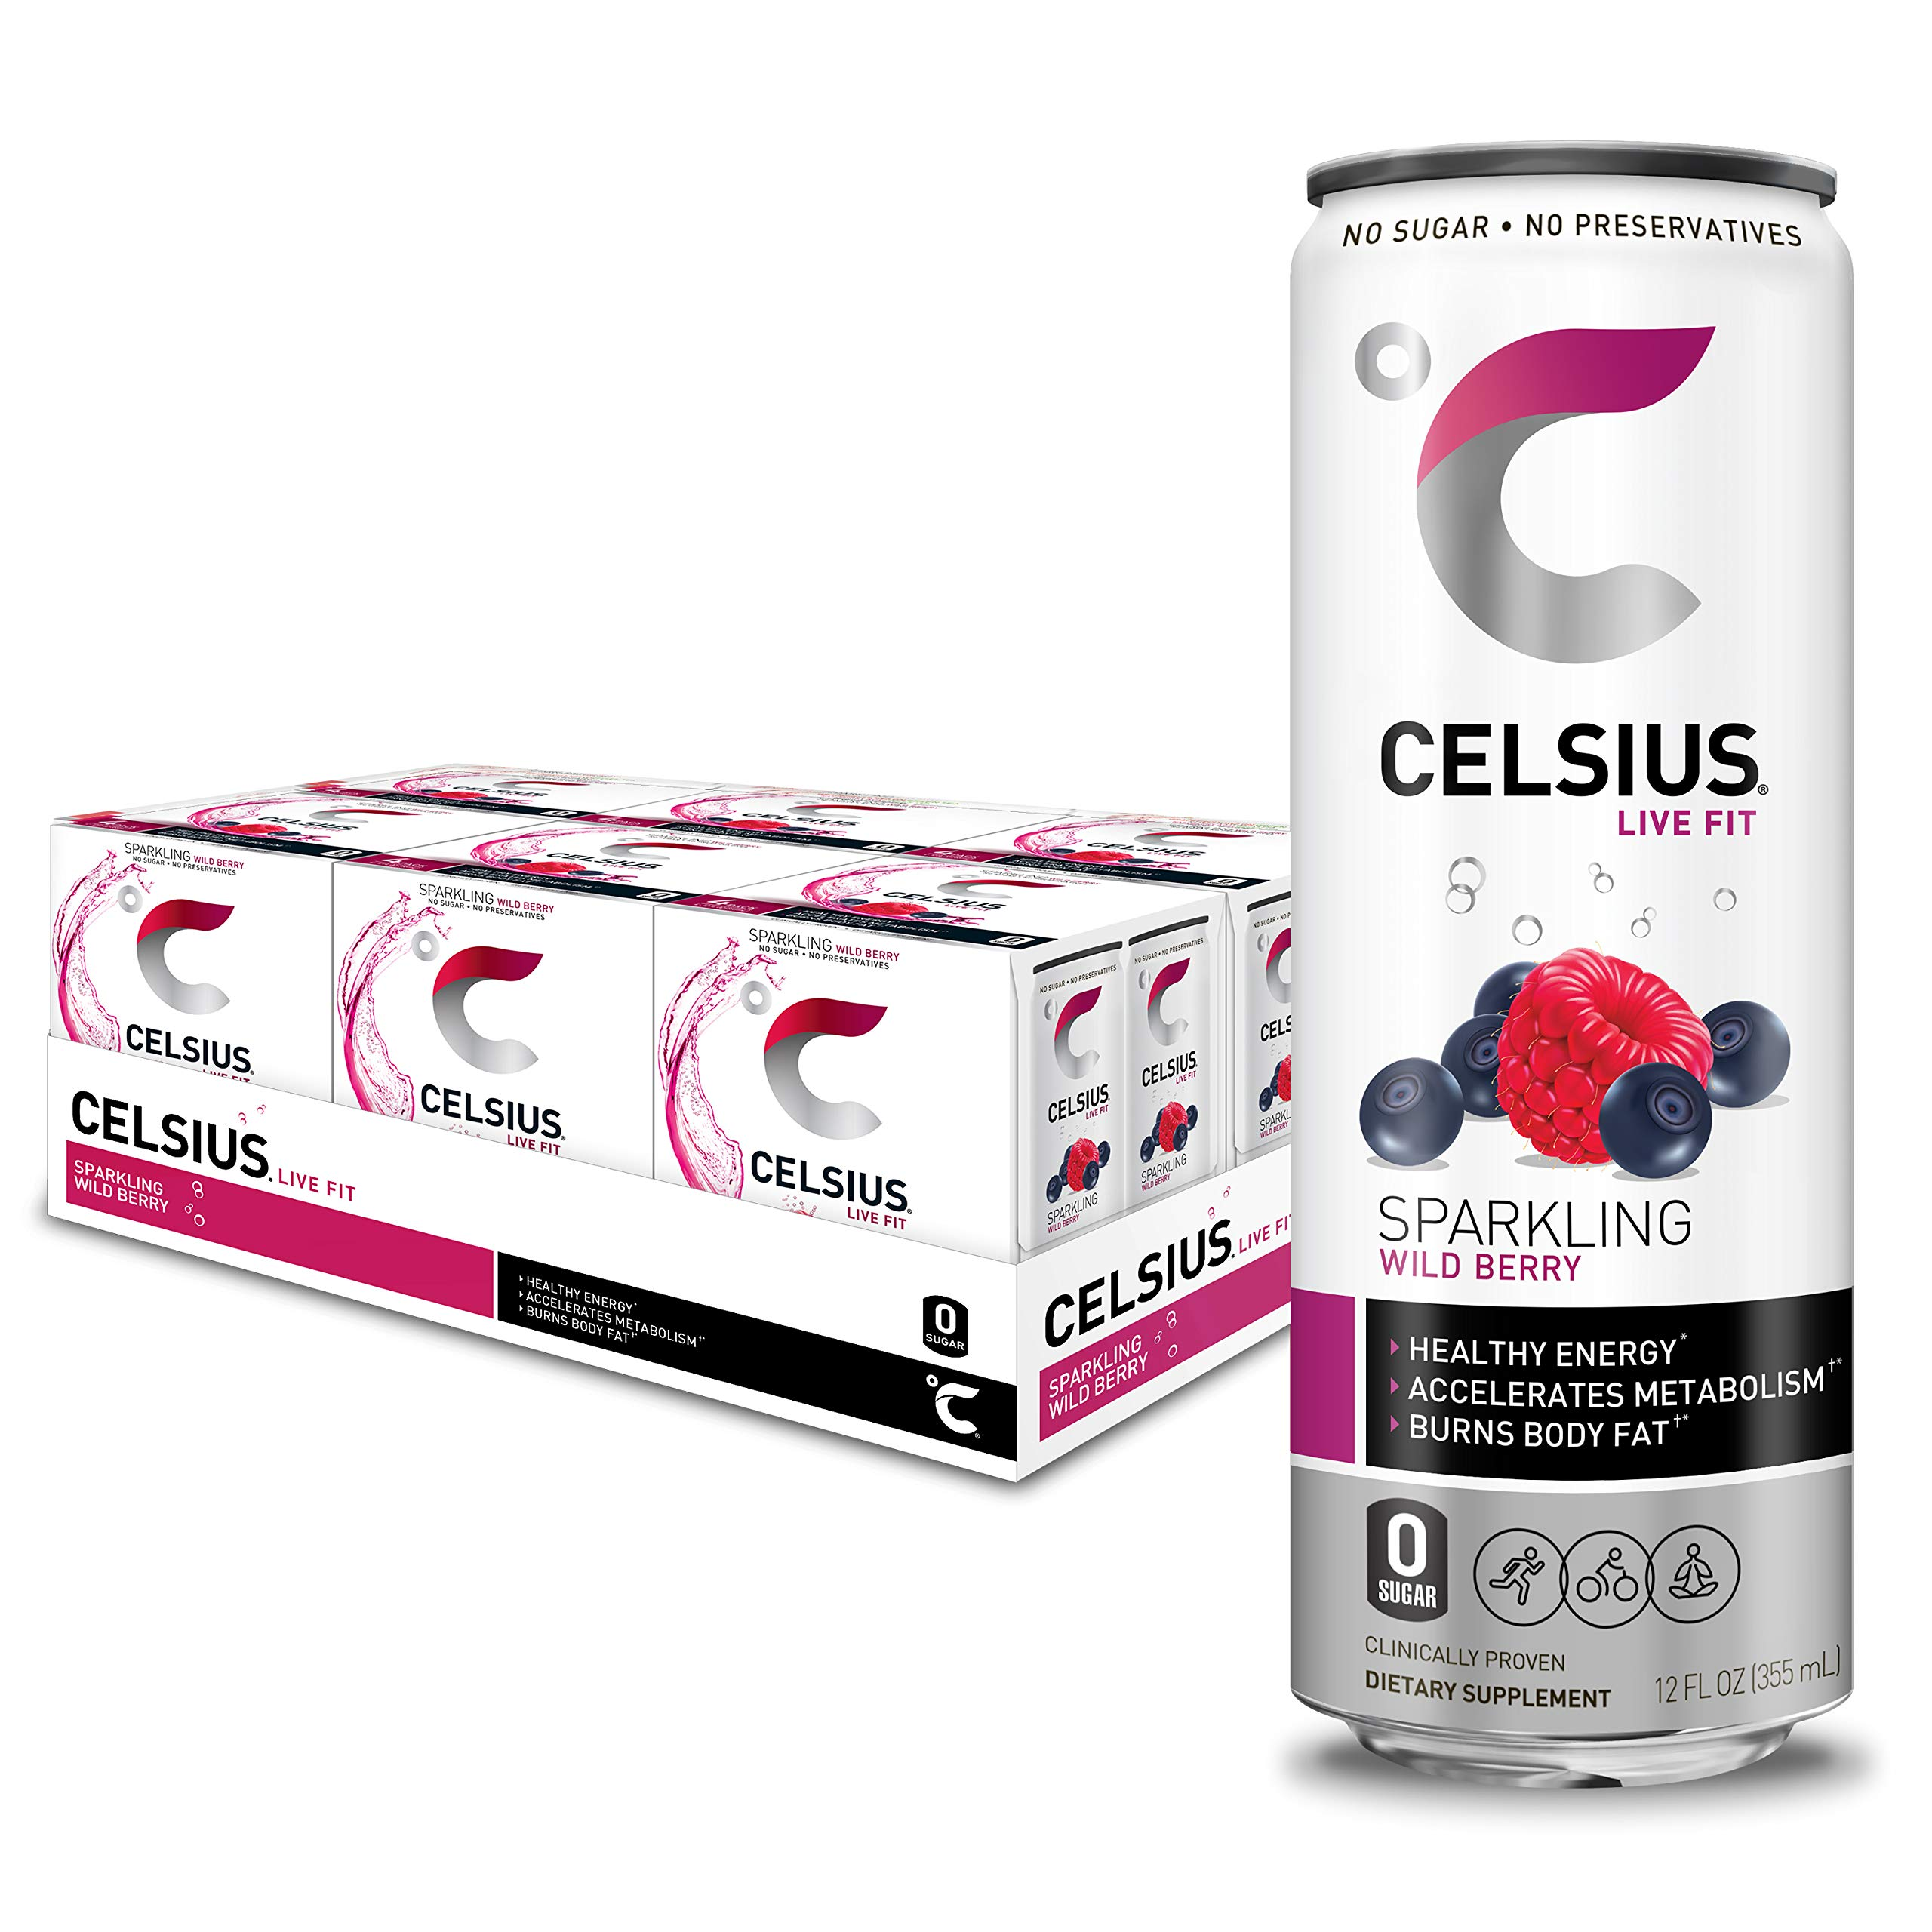 CELSIUS Sparkling Wild Berry Fitness Drink, Zero Sugar, Slim Can 4-Packs, 12 Fl Oz (Pack of 24)